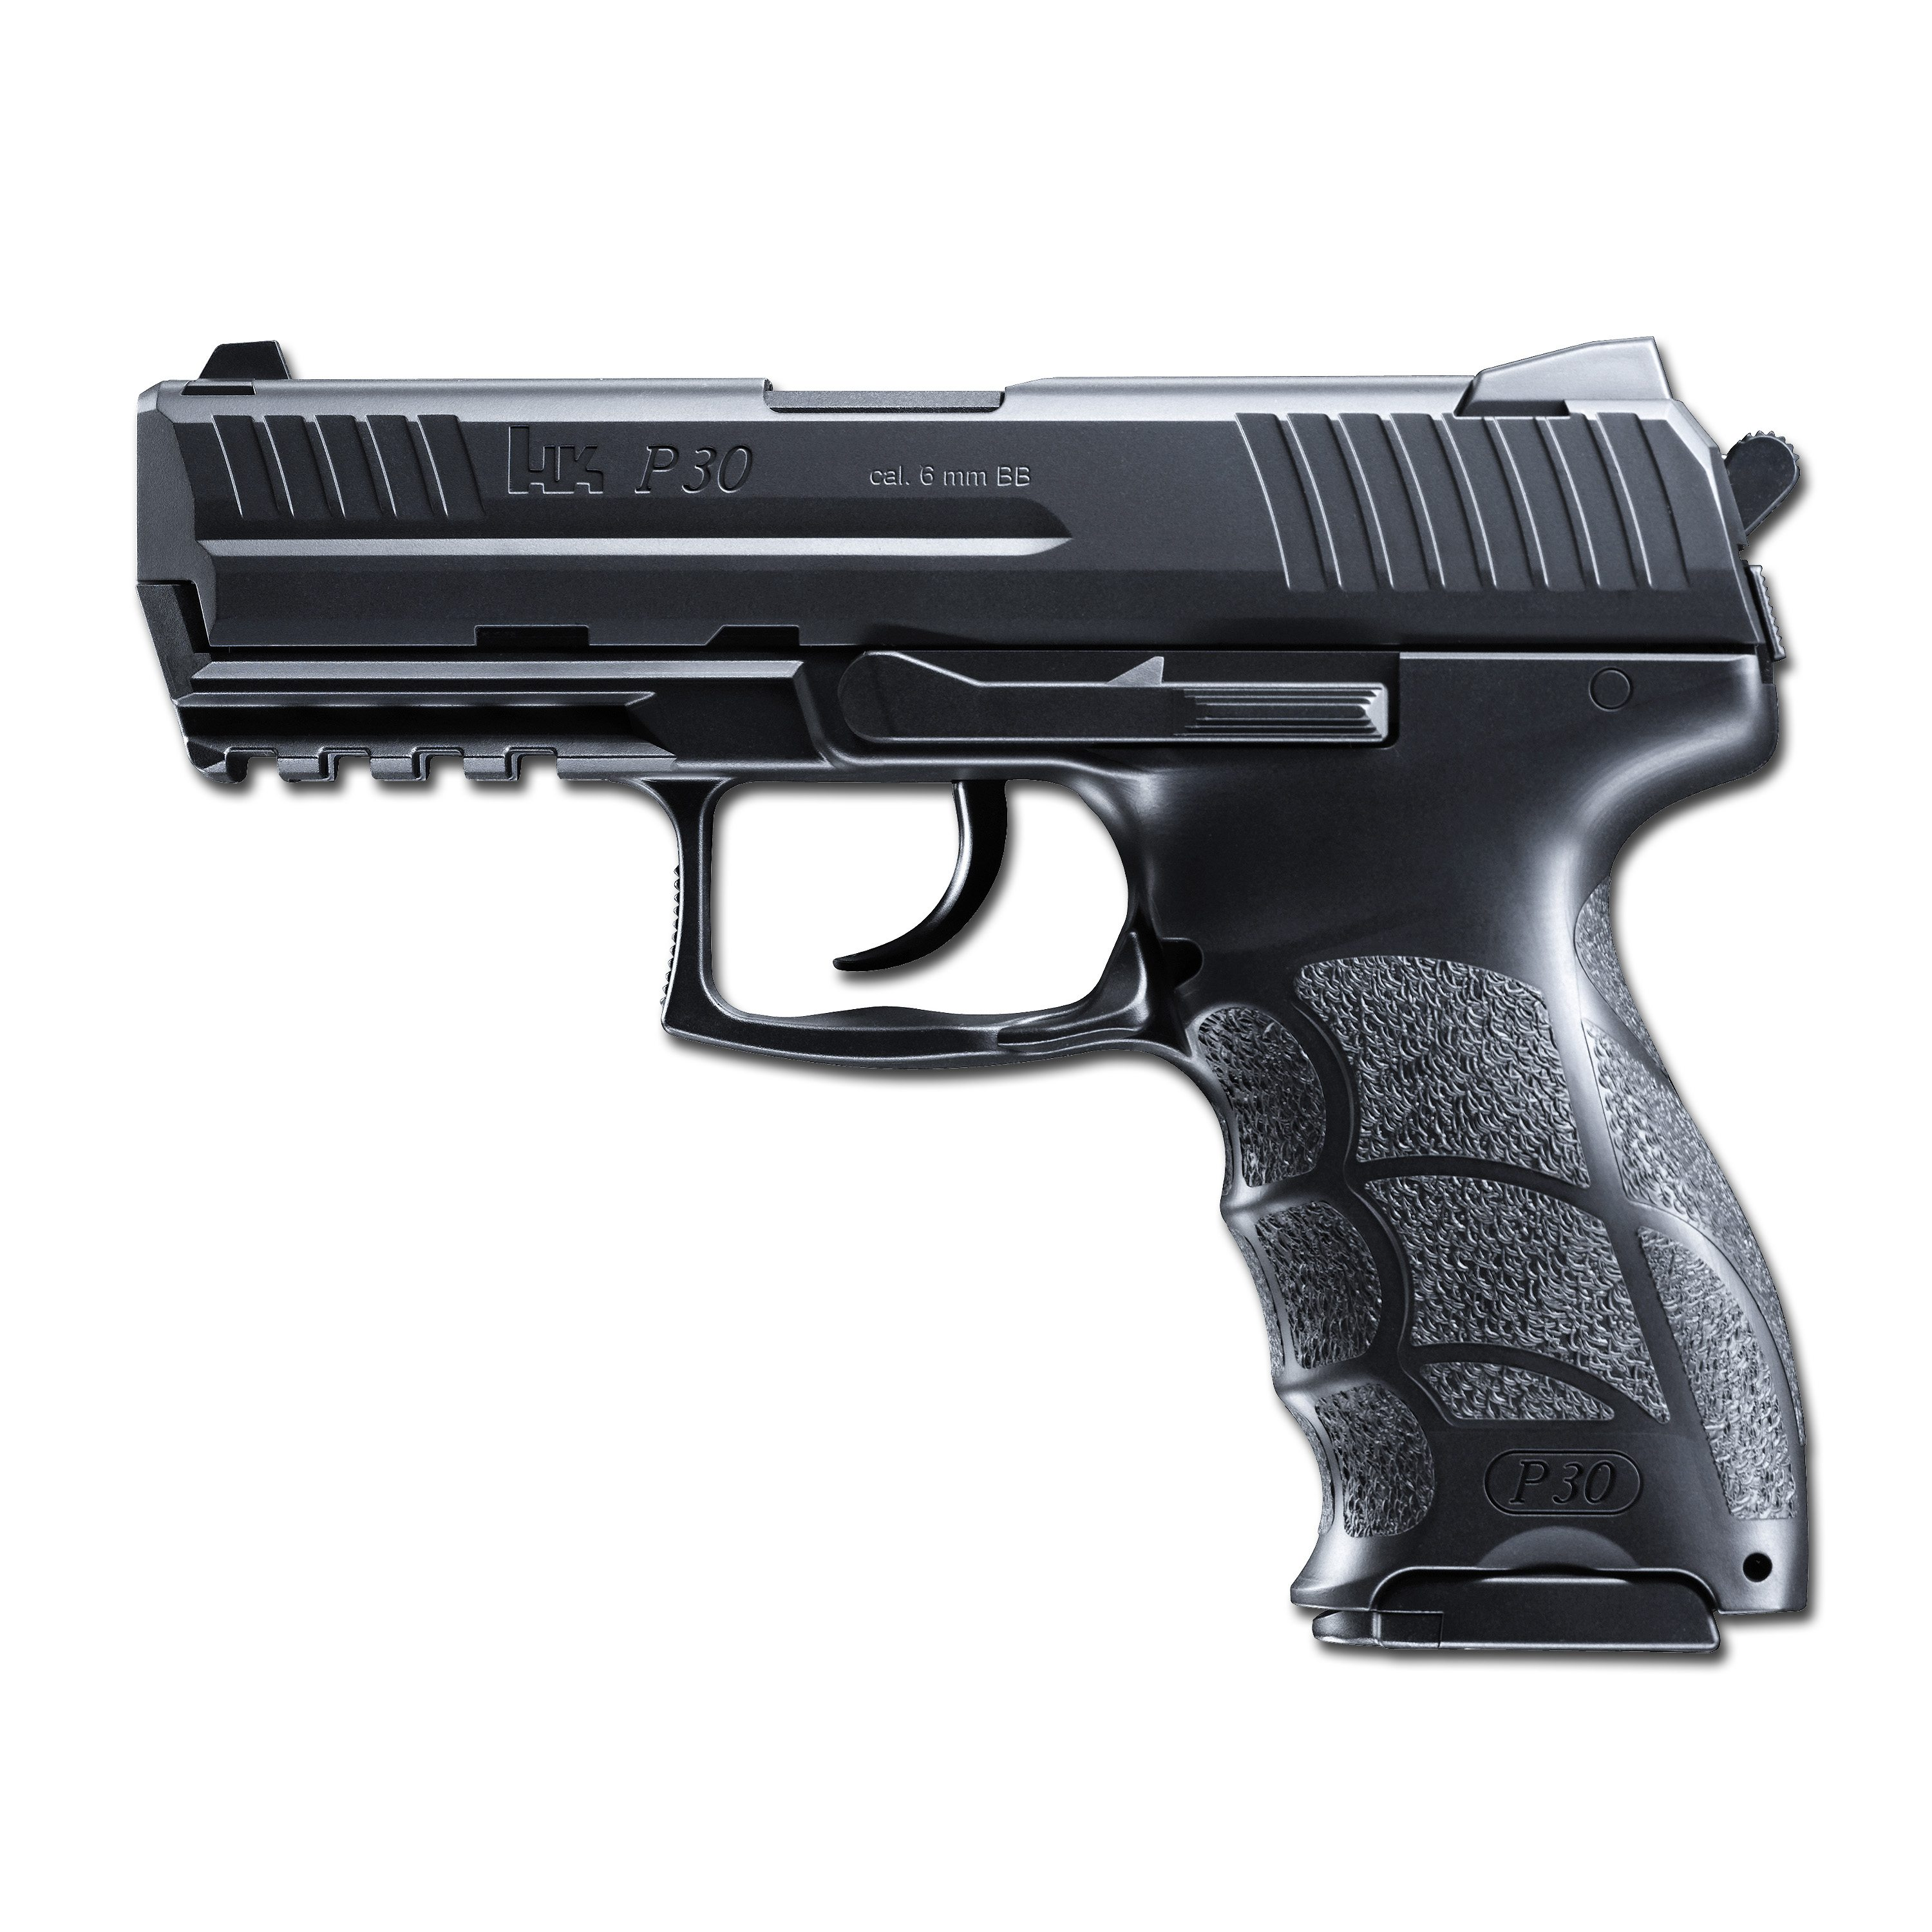 Pistole Softair Heckler Koch P30 0.5 J